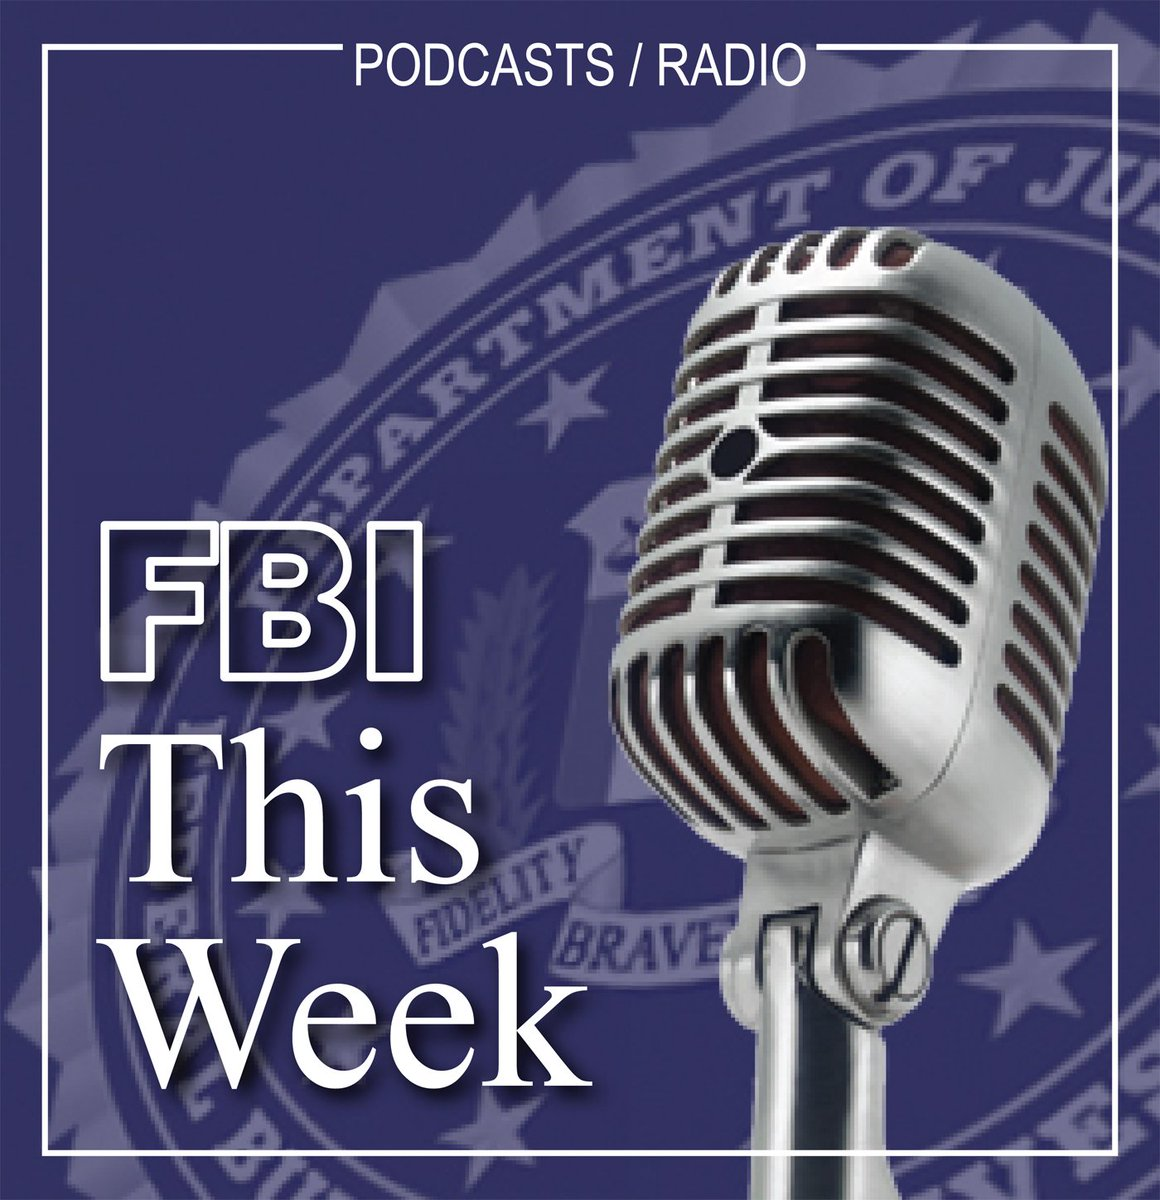 #FBI launching national use-of-force data collection pilot study in July.